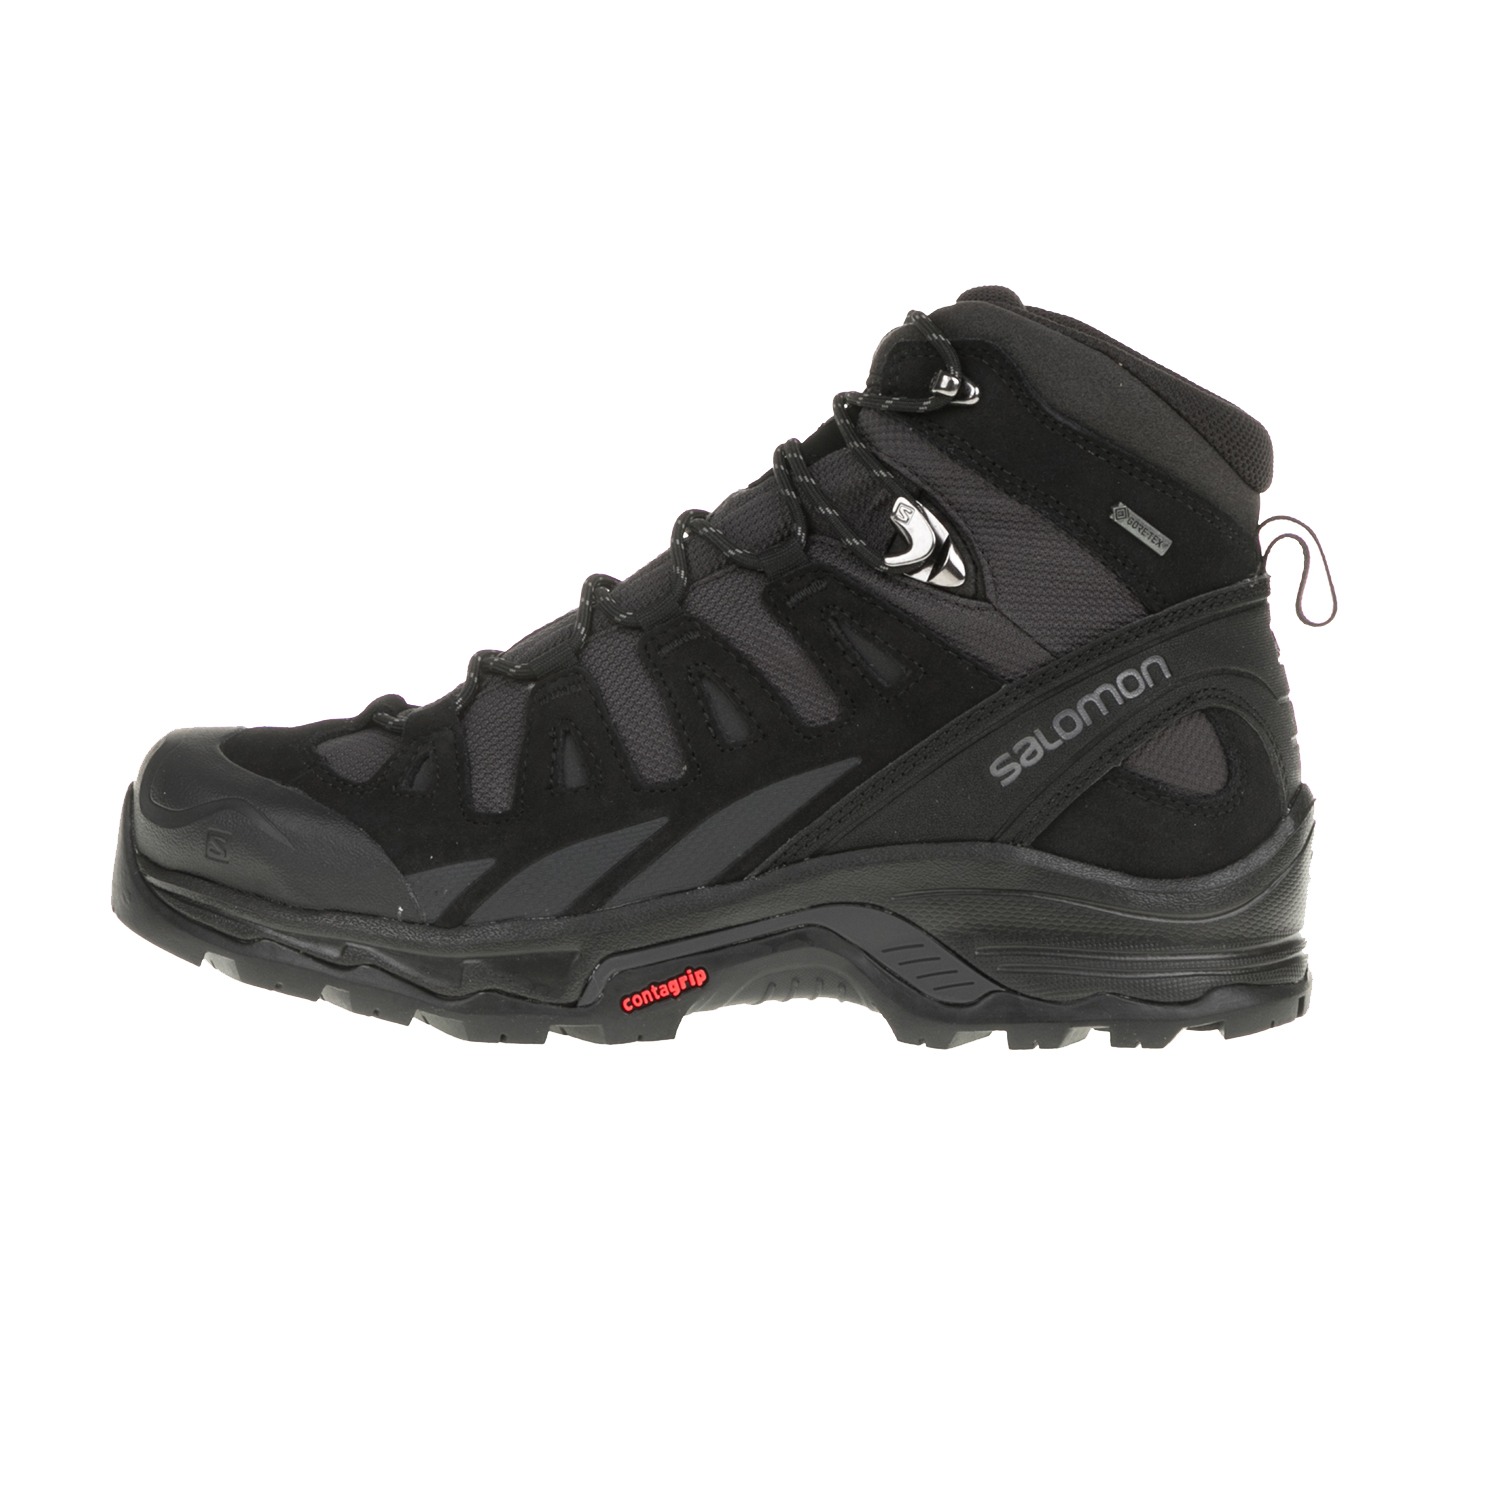 cedc31b5c88 SALOMON – Ανδρικά μποτάκια BACKPACKING SHOES QUEST PRIME ανθρακί-μαύρα